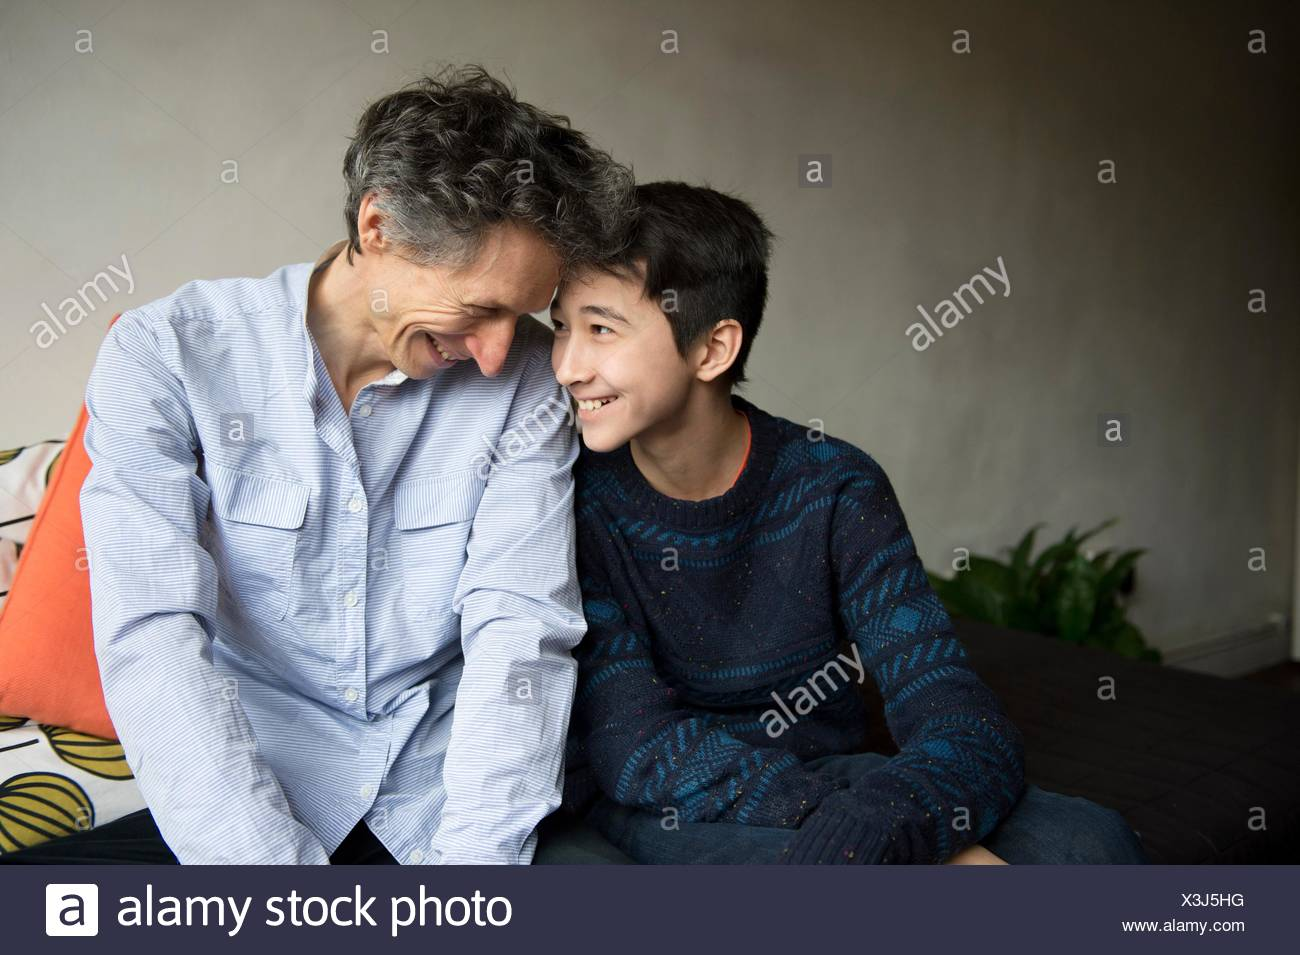 Teenage boy and father face to face on sofa - Stock Image